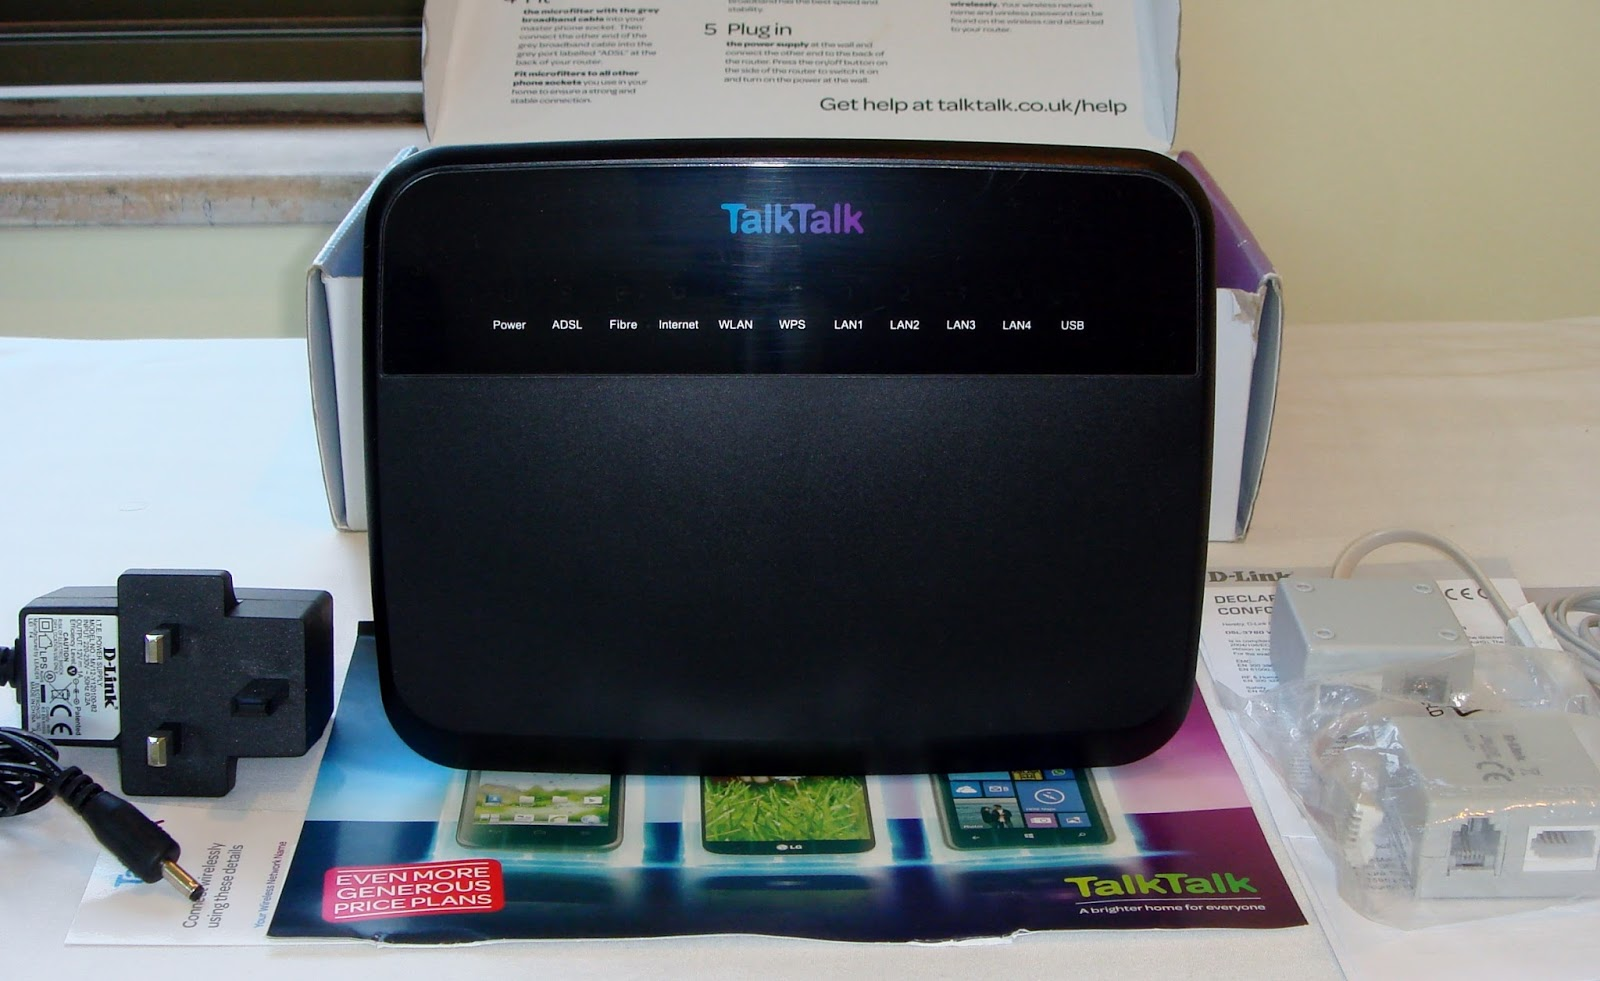 TalkTalk D-Link DSL-3780: Info and Use with Other ISPs